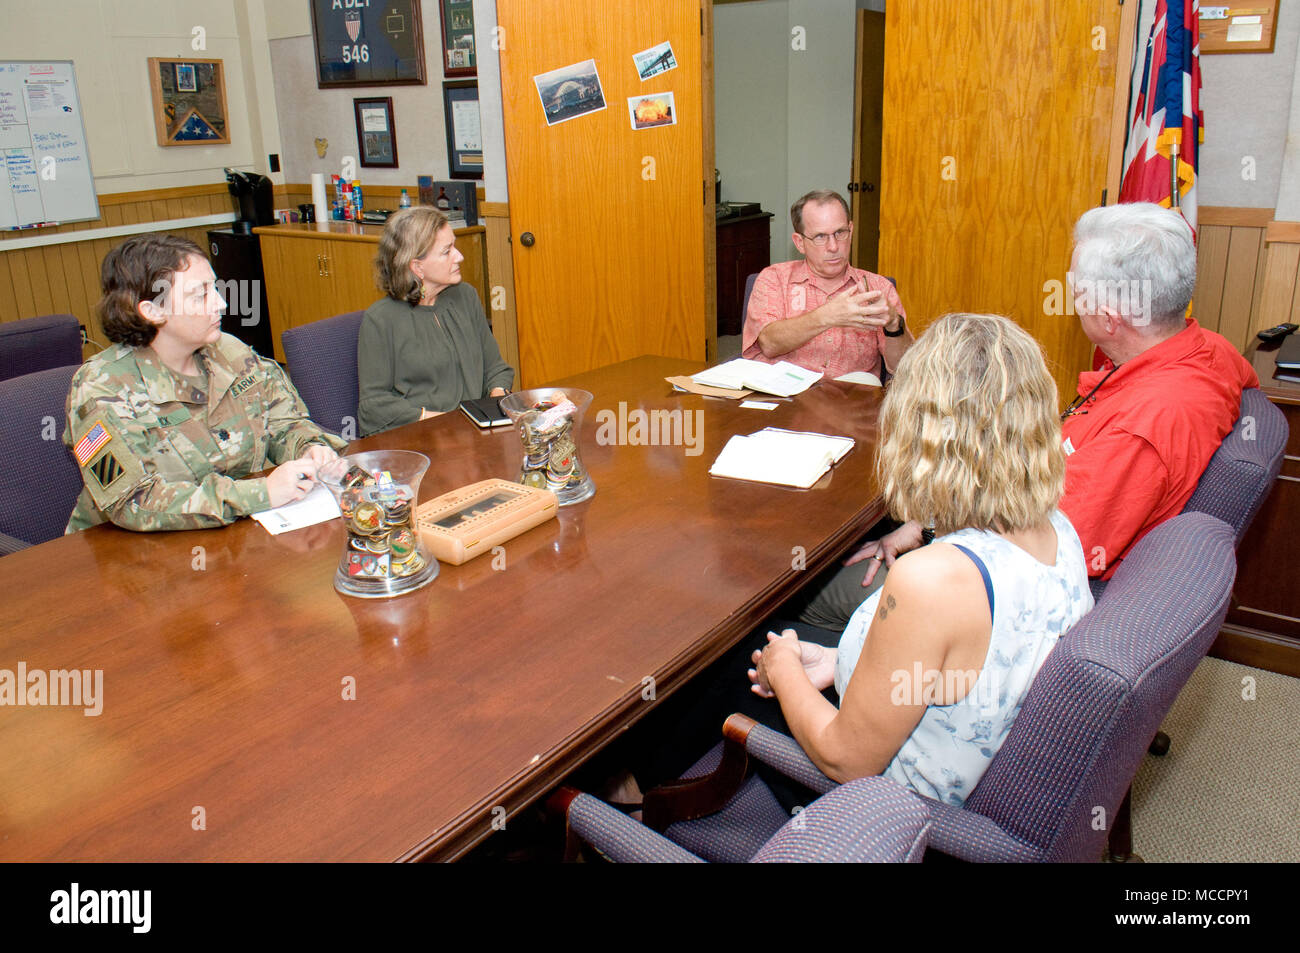 FORT SHAFTER — Lt. Col. Dawn Fick (left), chief of Human Resources Policy Division, Office of the Assistant Chief of Staff, G-1, U.S. Army-Pacific, Helen Gibson Ahn (green), a well-being specialist with USARPAC G-1, Pat Rice (in back), the deputy G1 for USARPAC, Ret. Col. Walter M. Herd, Army Transition Division director at the Human Resources Command Center of Excellence, and Sabrina Newman, Transition Services Specialist, Military Personnel Division (DHR) U.S. Army Garrison-Hawaii, discuss SFL-TAP at Fort Shafter, Feb. 2. Herd came to Hawaii, Feb. 1 and 2, visiting local SFL-TAP centers at S - Stock Image